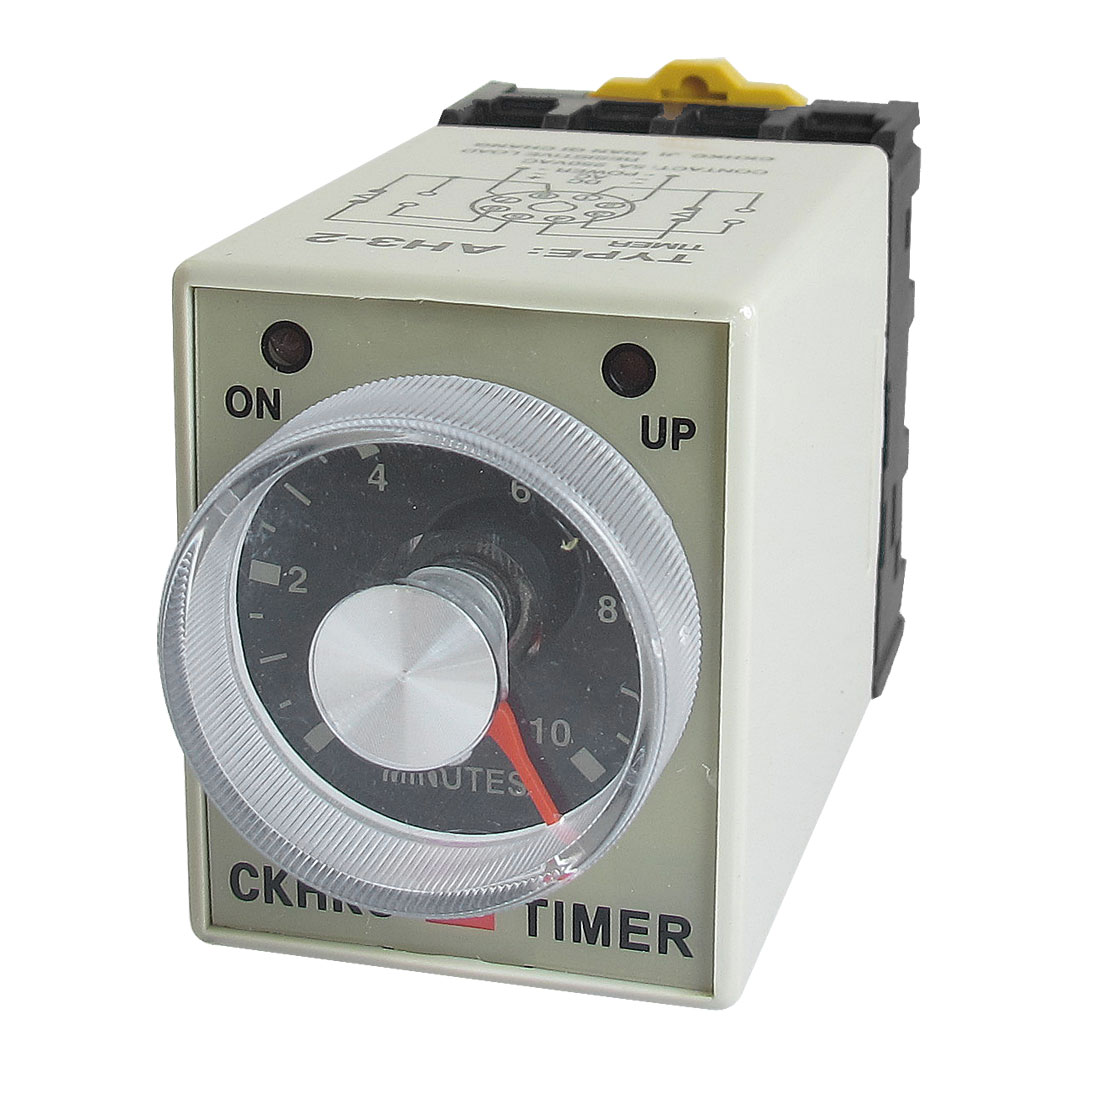 AH3-2 AC 220V 8 Pins 0-10 Minutes 10Min Power on Delay Timer Time Relay w Socket